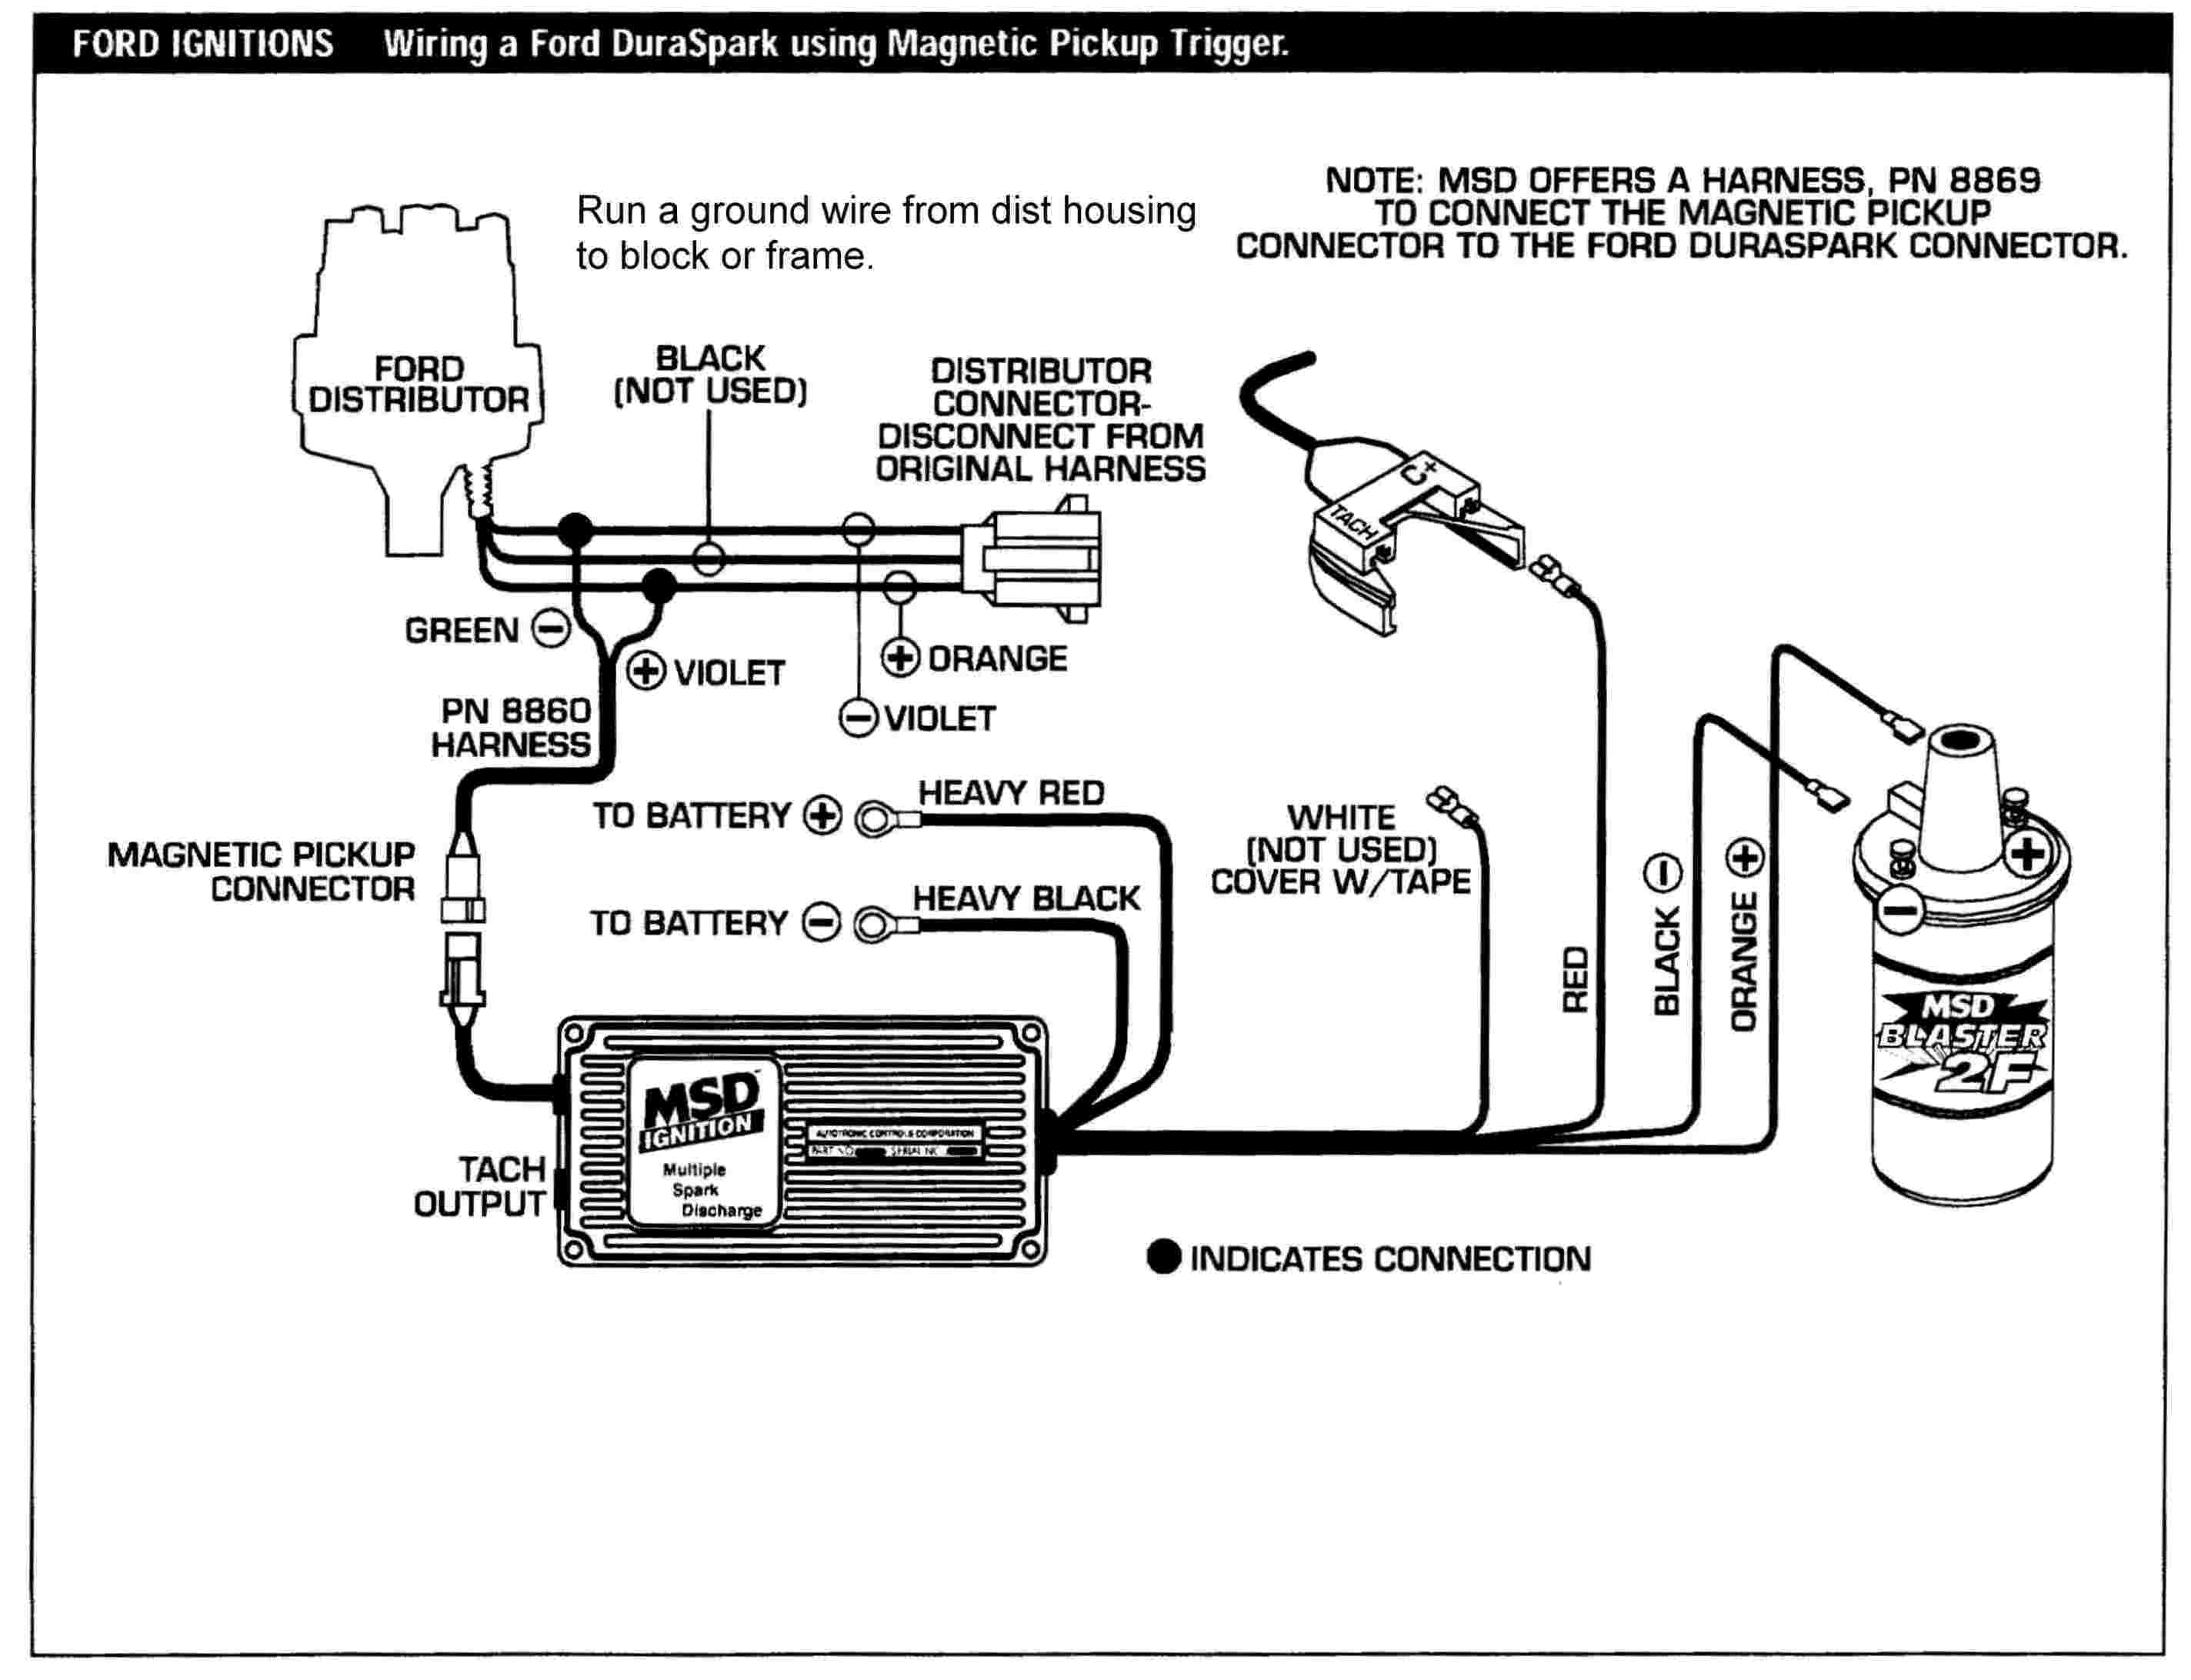 Ford Duraspark MSD schematic automotive component engineering accel super coil wiring diagram at alyssarenee.co